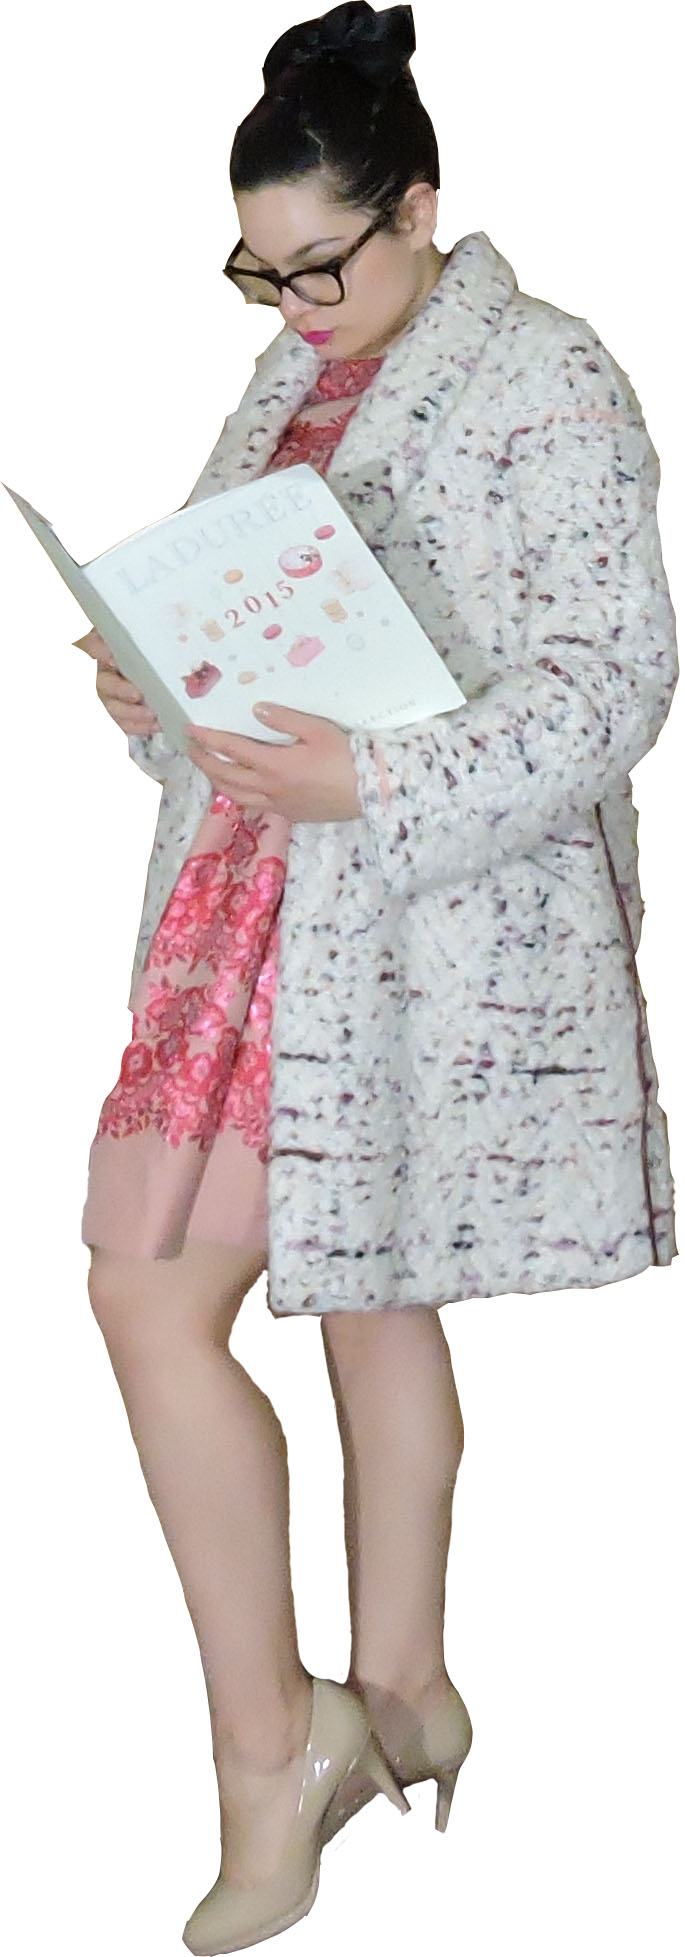 valentino dress w coat and book.jpg